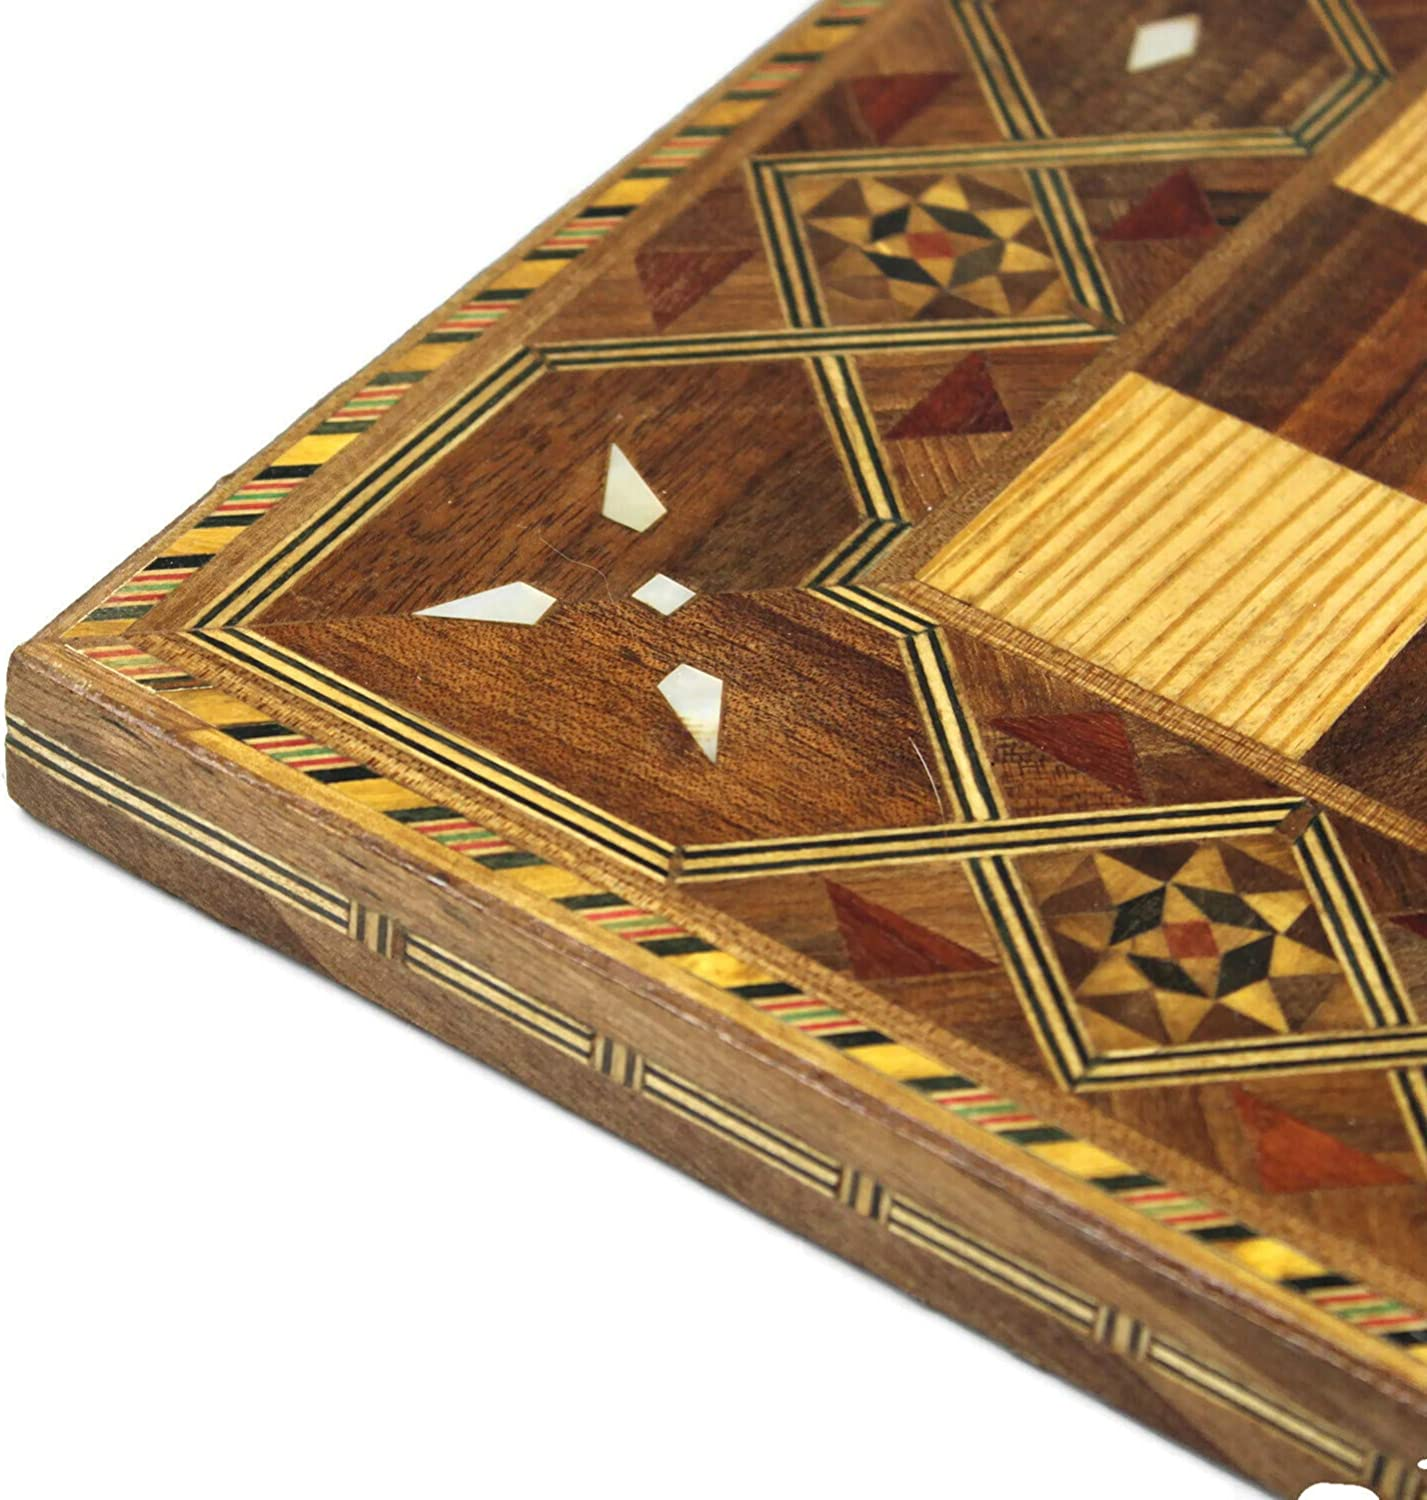 CWMD18 Chessgammon CHESS BOARD ONLY HANDMADE INLAID WALNUT WOODEN GAME BOARD MOSAIC WITH MOTHER OF PEARL TIMBER